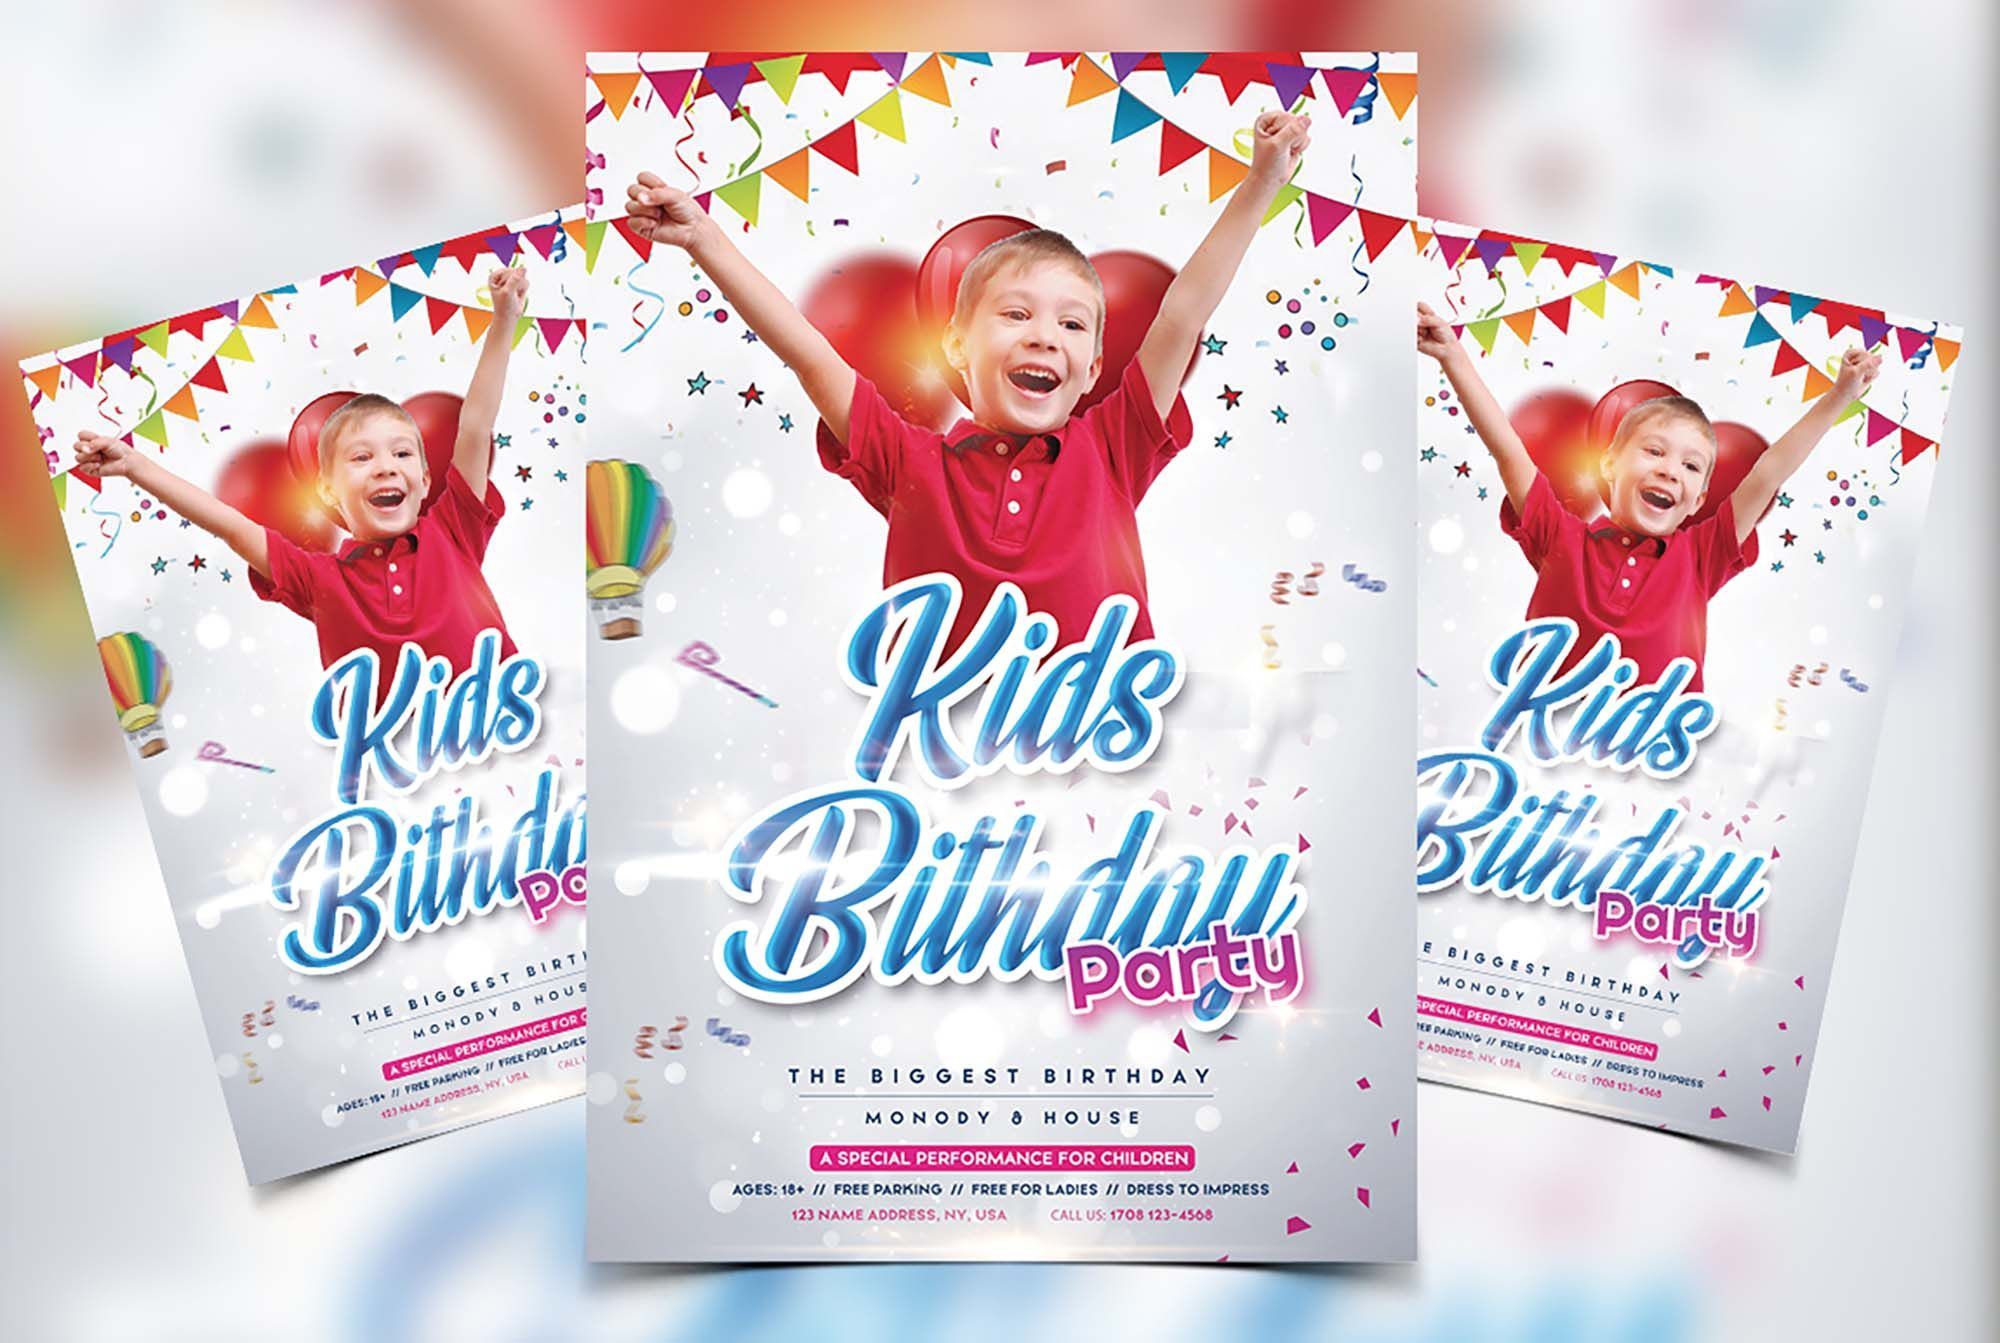 009 Breathtaking Free Birthday Flyer Template Psd Example  Foam Party - Neon Glow Download PoolFull